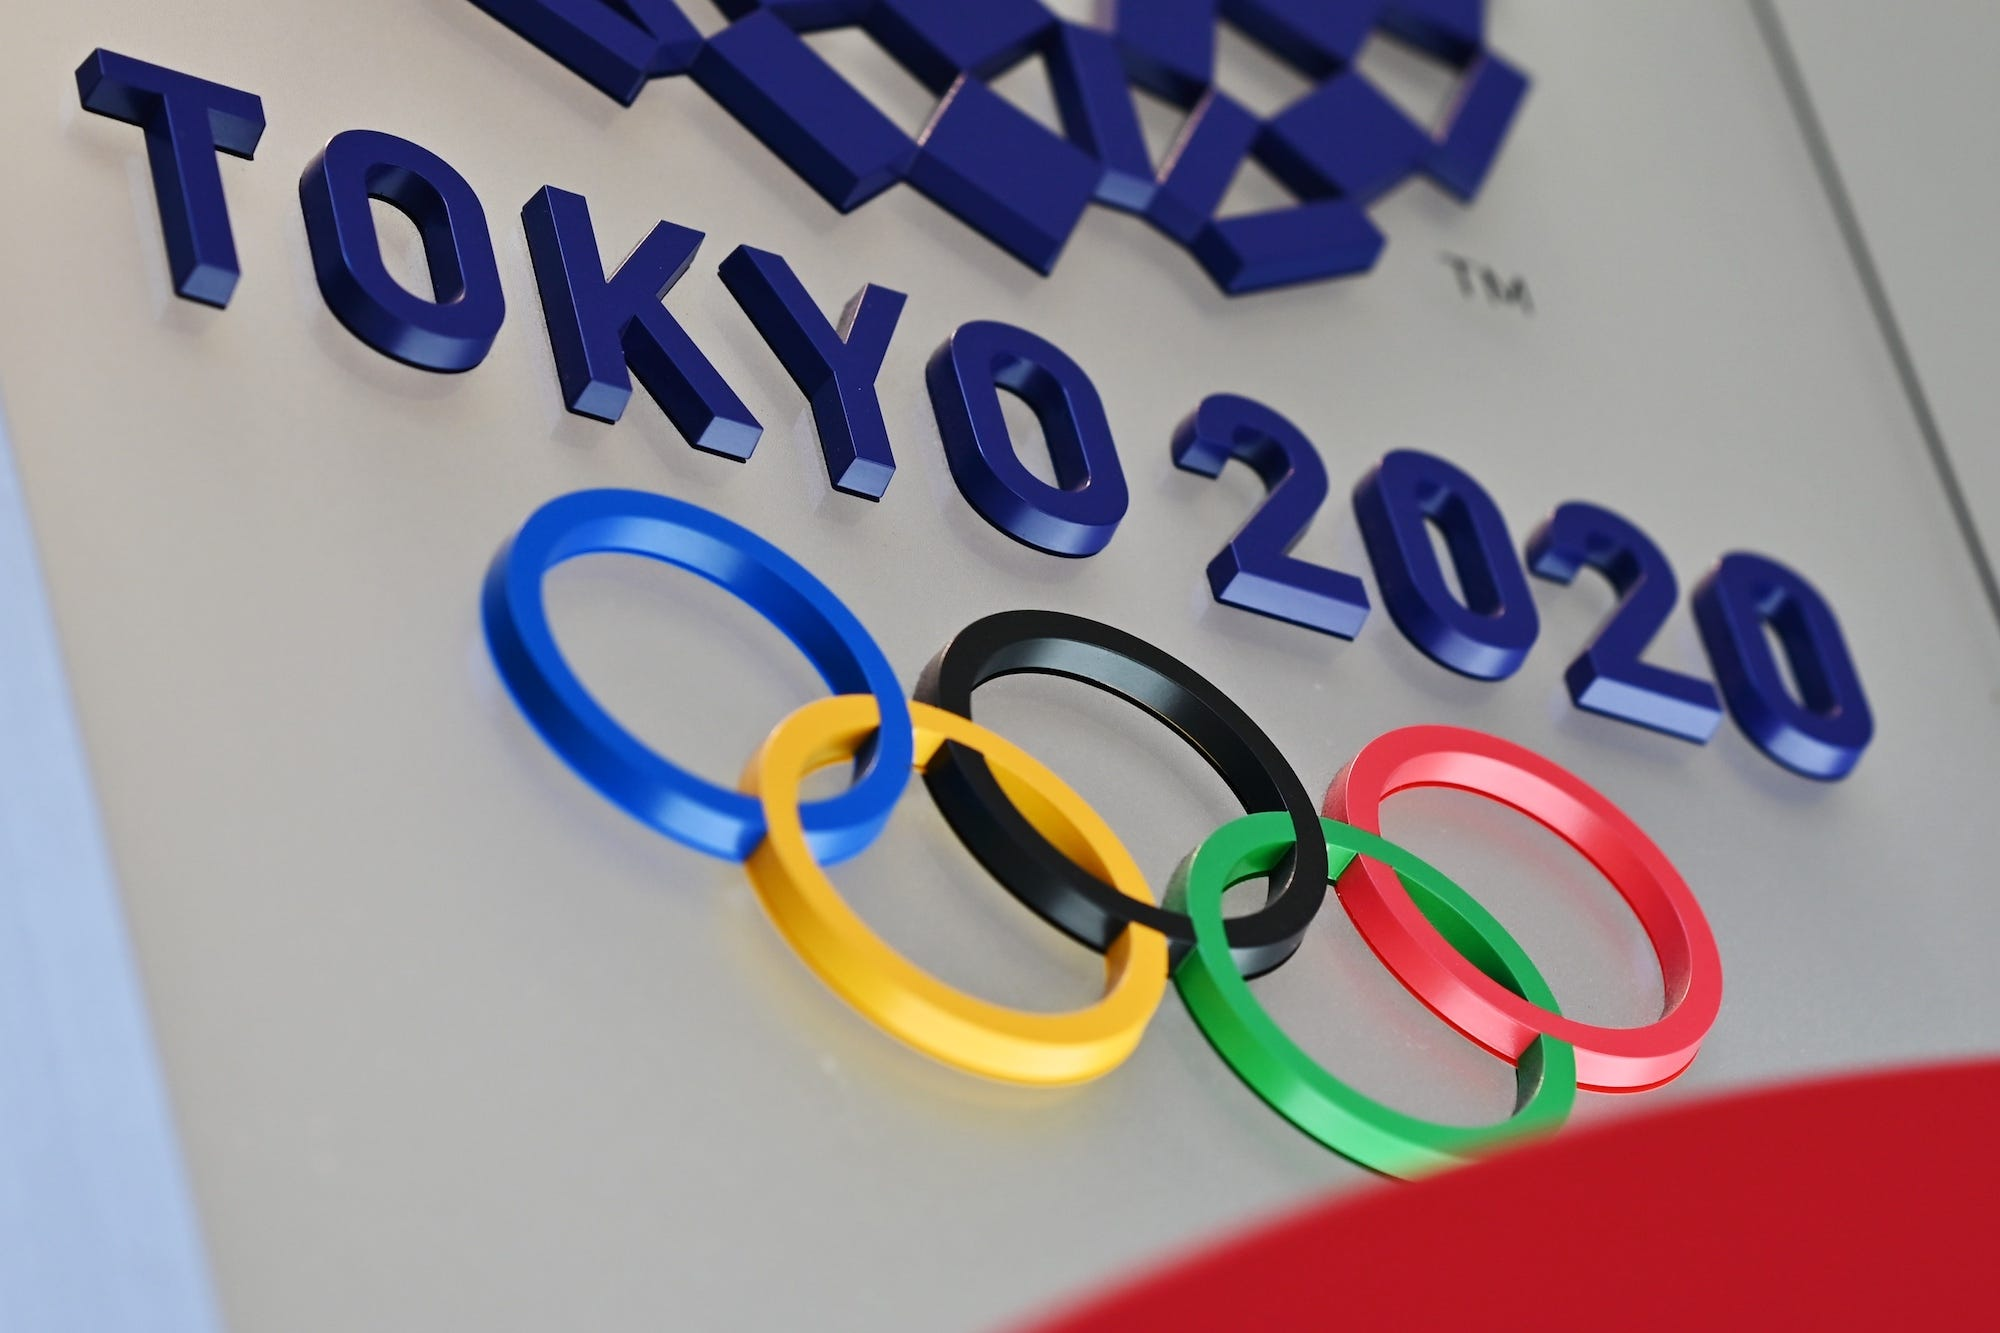 No one seems to be completely certain whether or not the Tokyo Olympic Games are actually going to happen